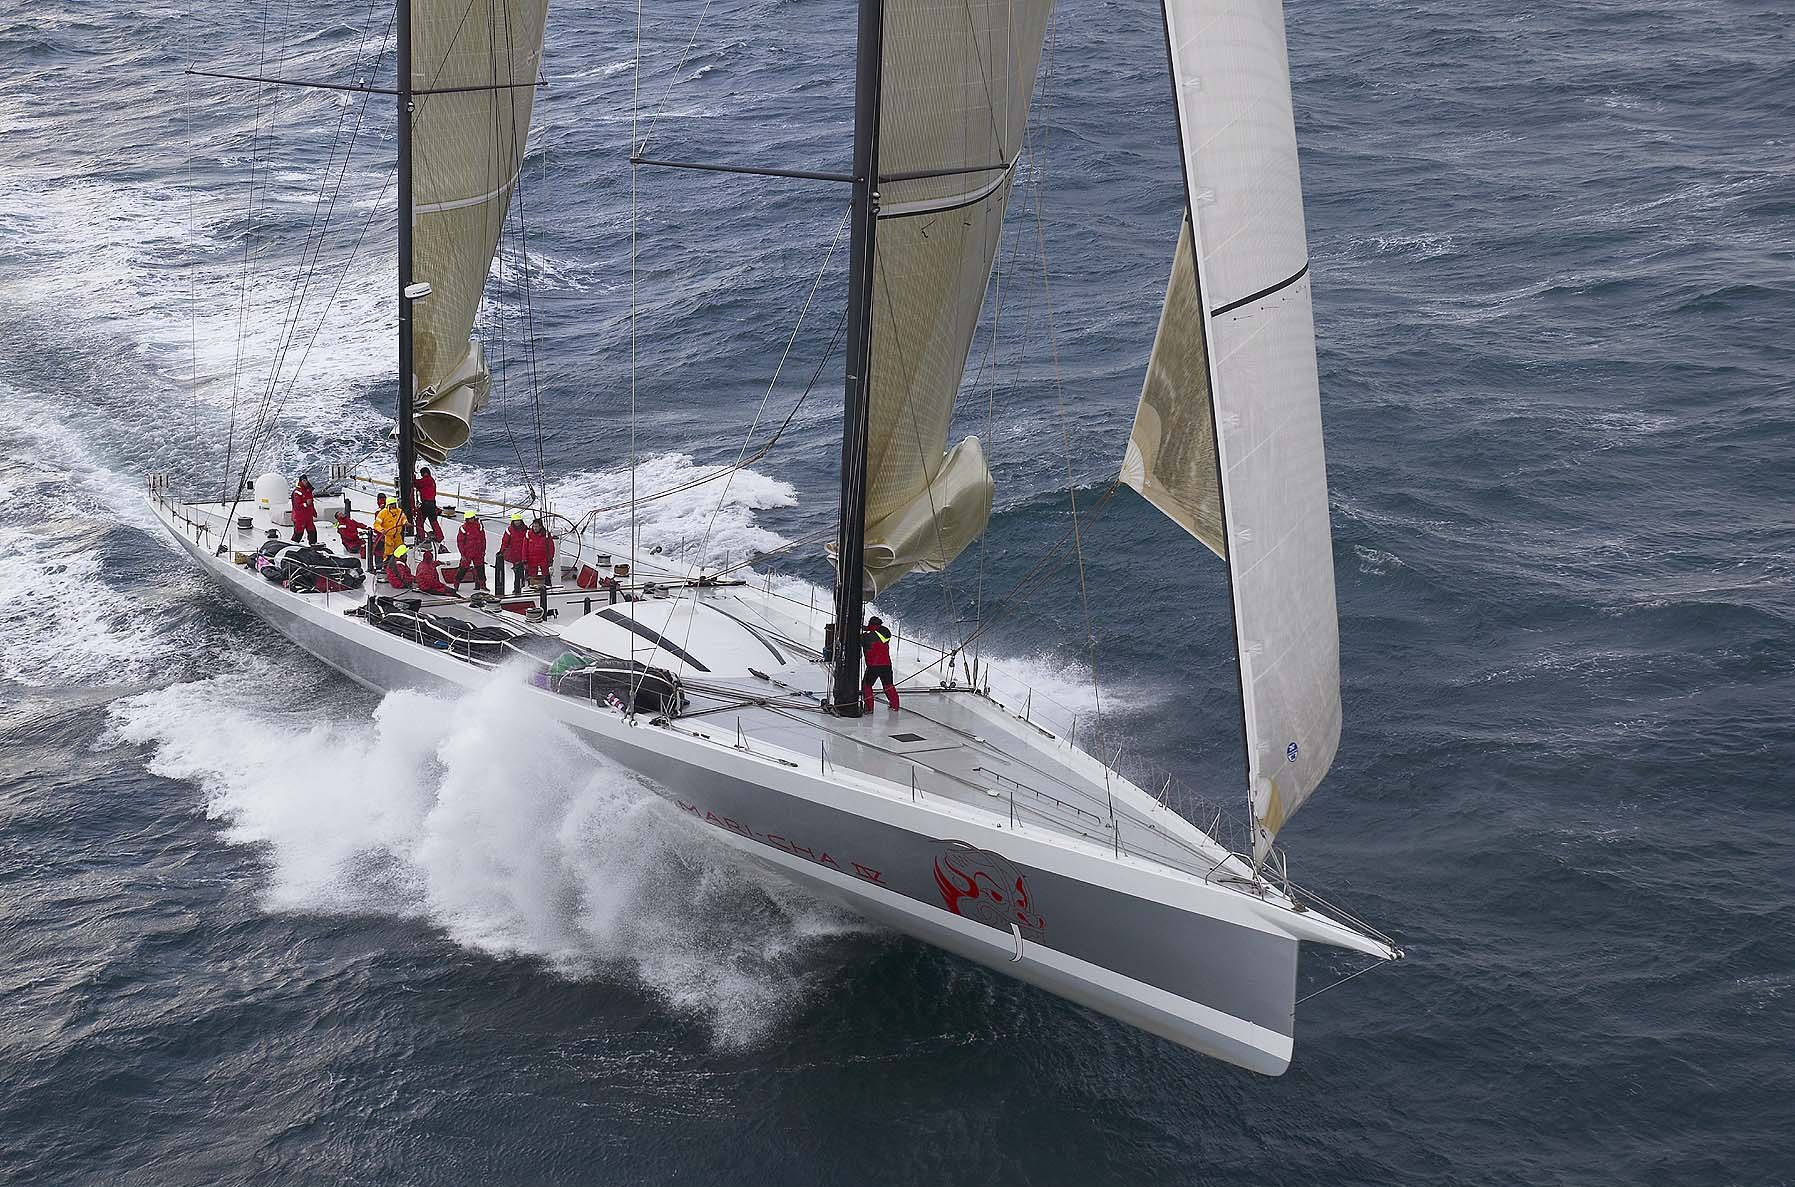 Owen Clarke Design undertook the performance optimisation for the last refit of the maxi racing schooner Mari Cha 4. This included a vpp review of the sailing balance of the yacht which resulted in a fundamental revision of how the yacht was sailed and our design and engineering of two very large daggerboards, each weighing in the region of 250 kg.